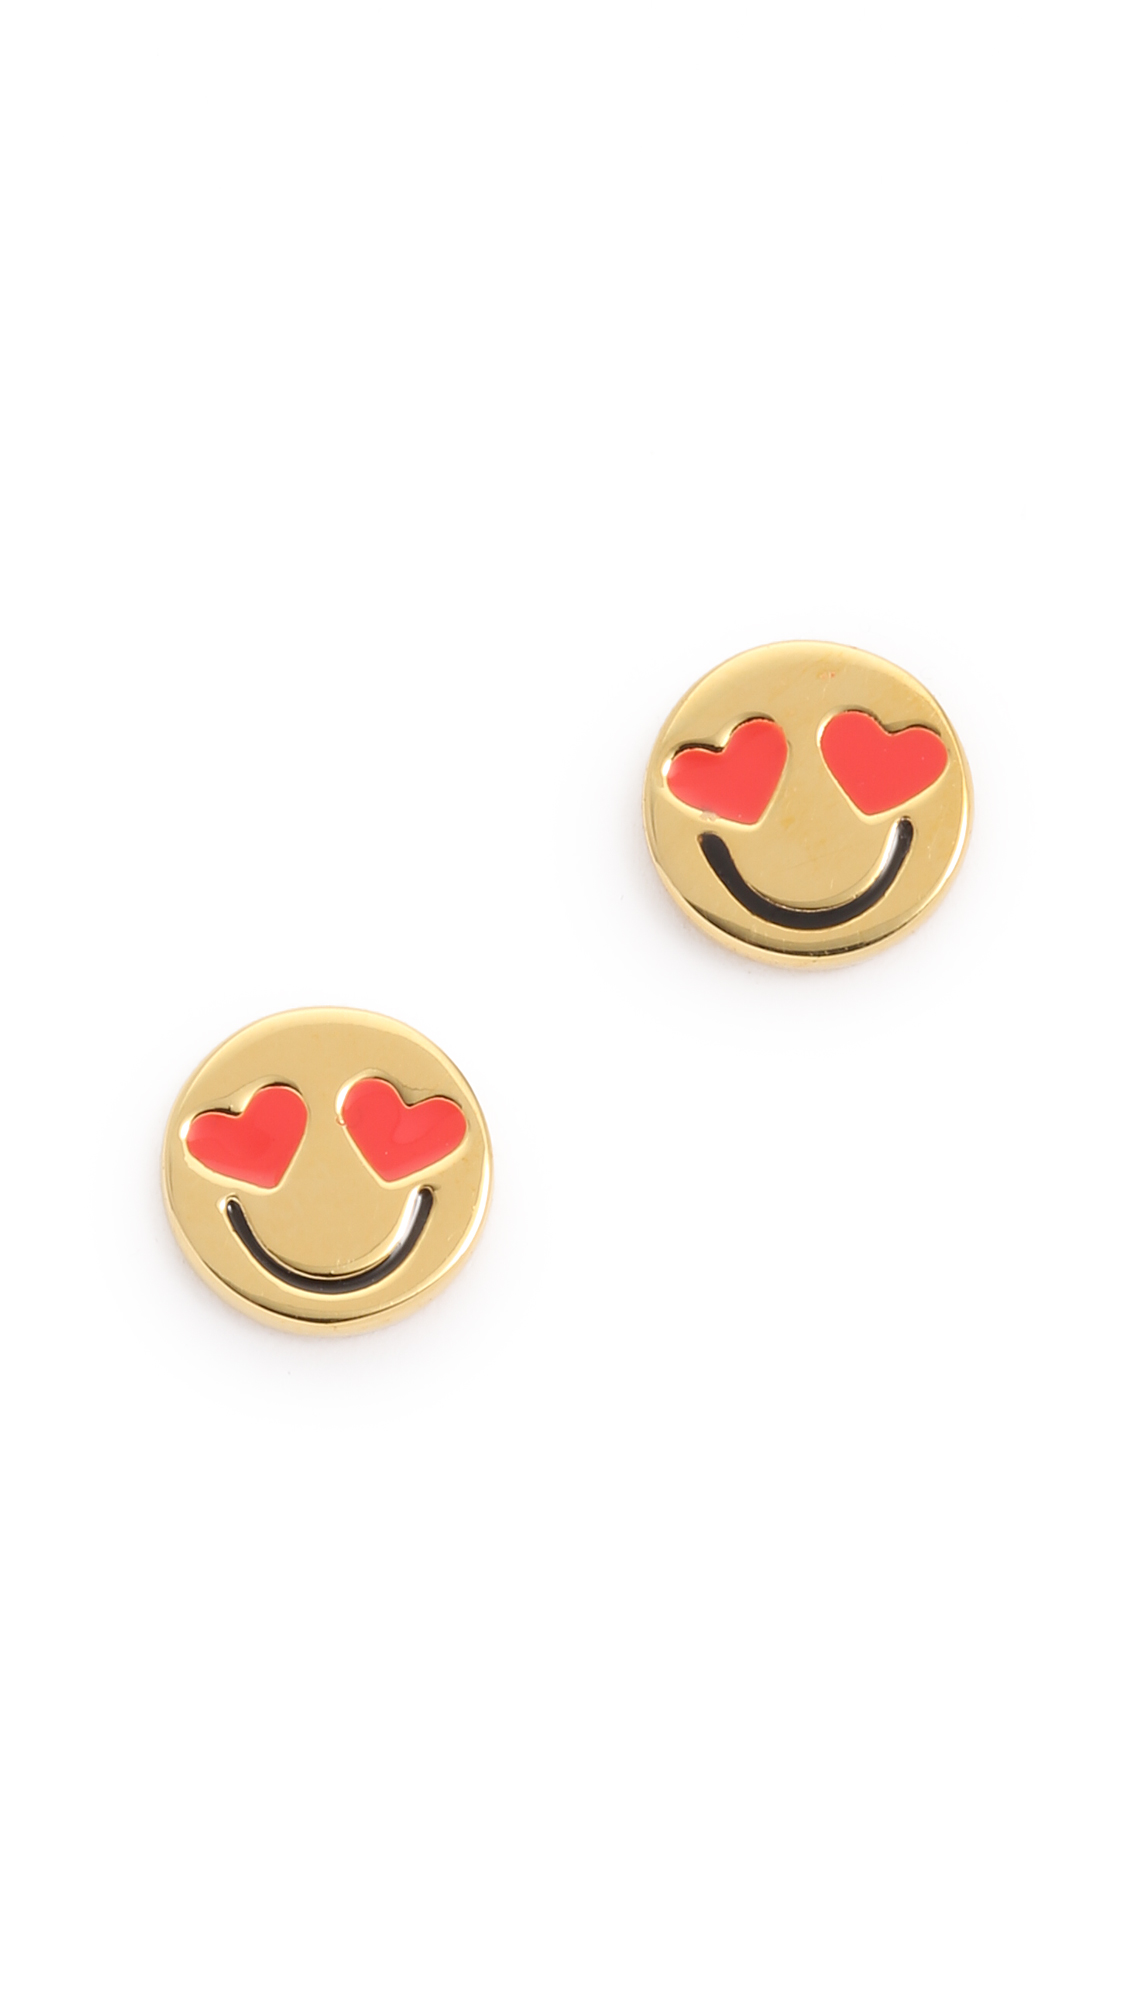 earrings jewelry pack of stud orders emoji over overstock free gold watches pairs shipping on white product